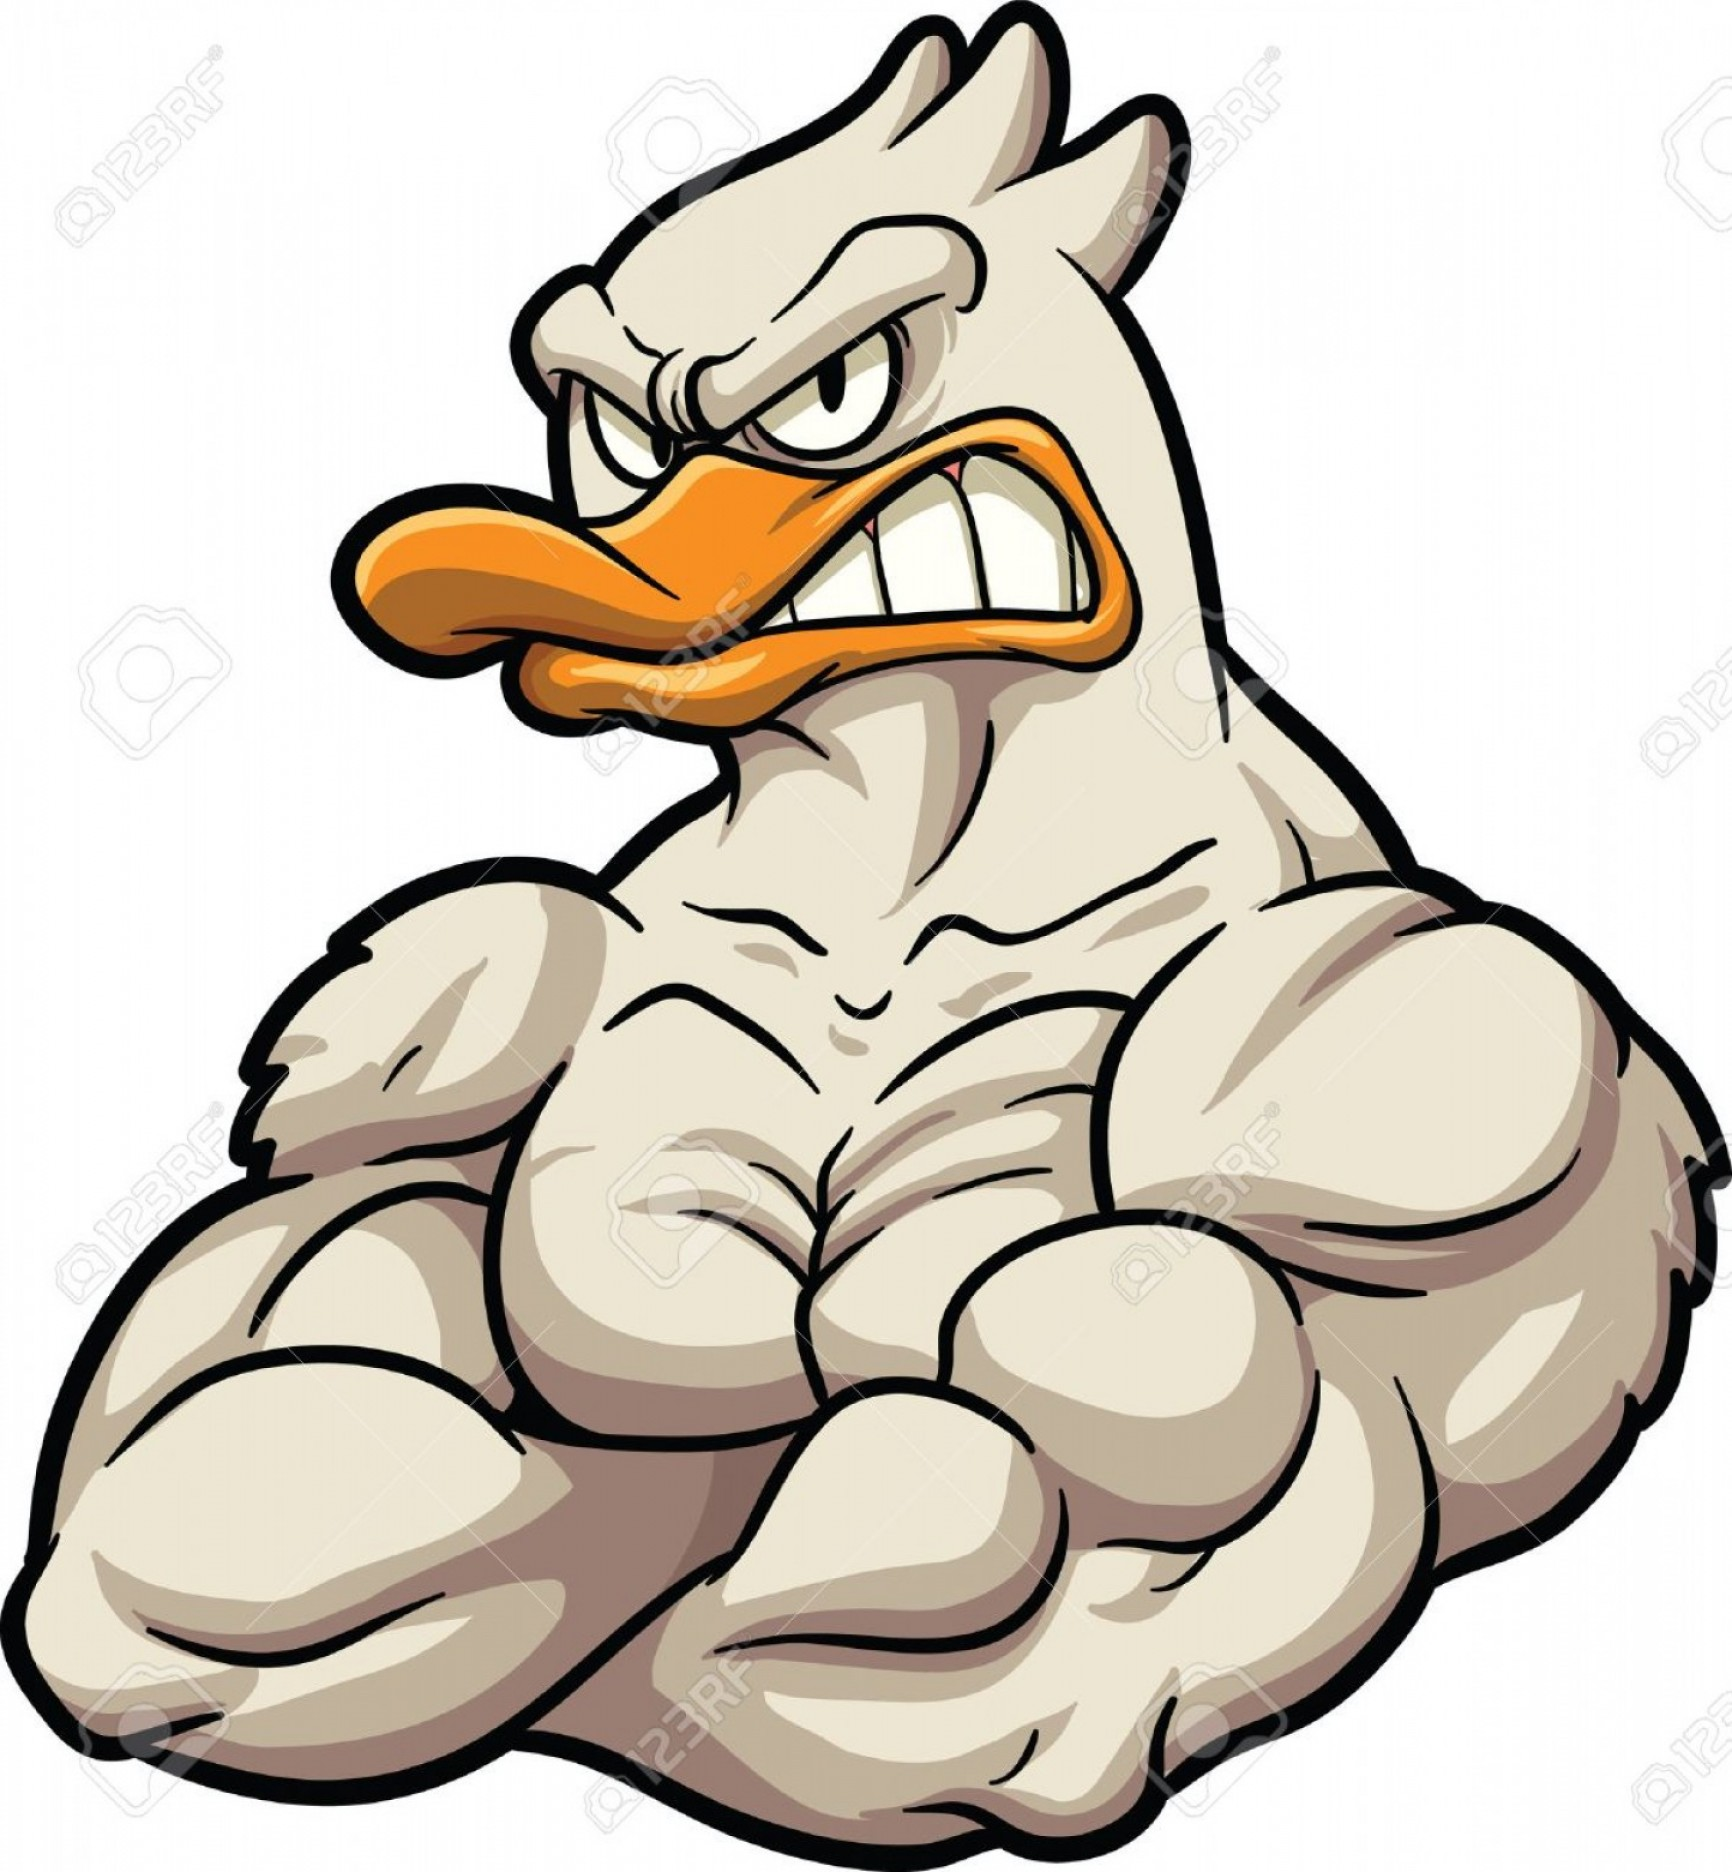 Cartoon Duck Vector: Photostock Vector Strong Cartoon Duck Mascot Vector Clip Art Illustration All In A Single Layer